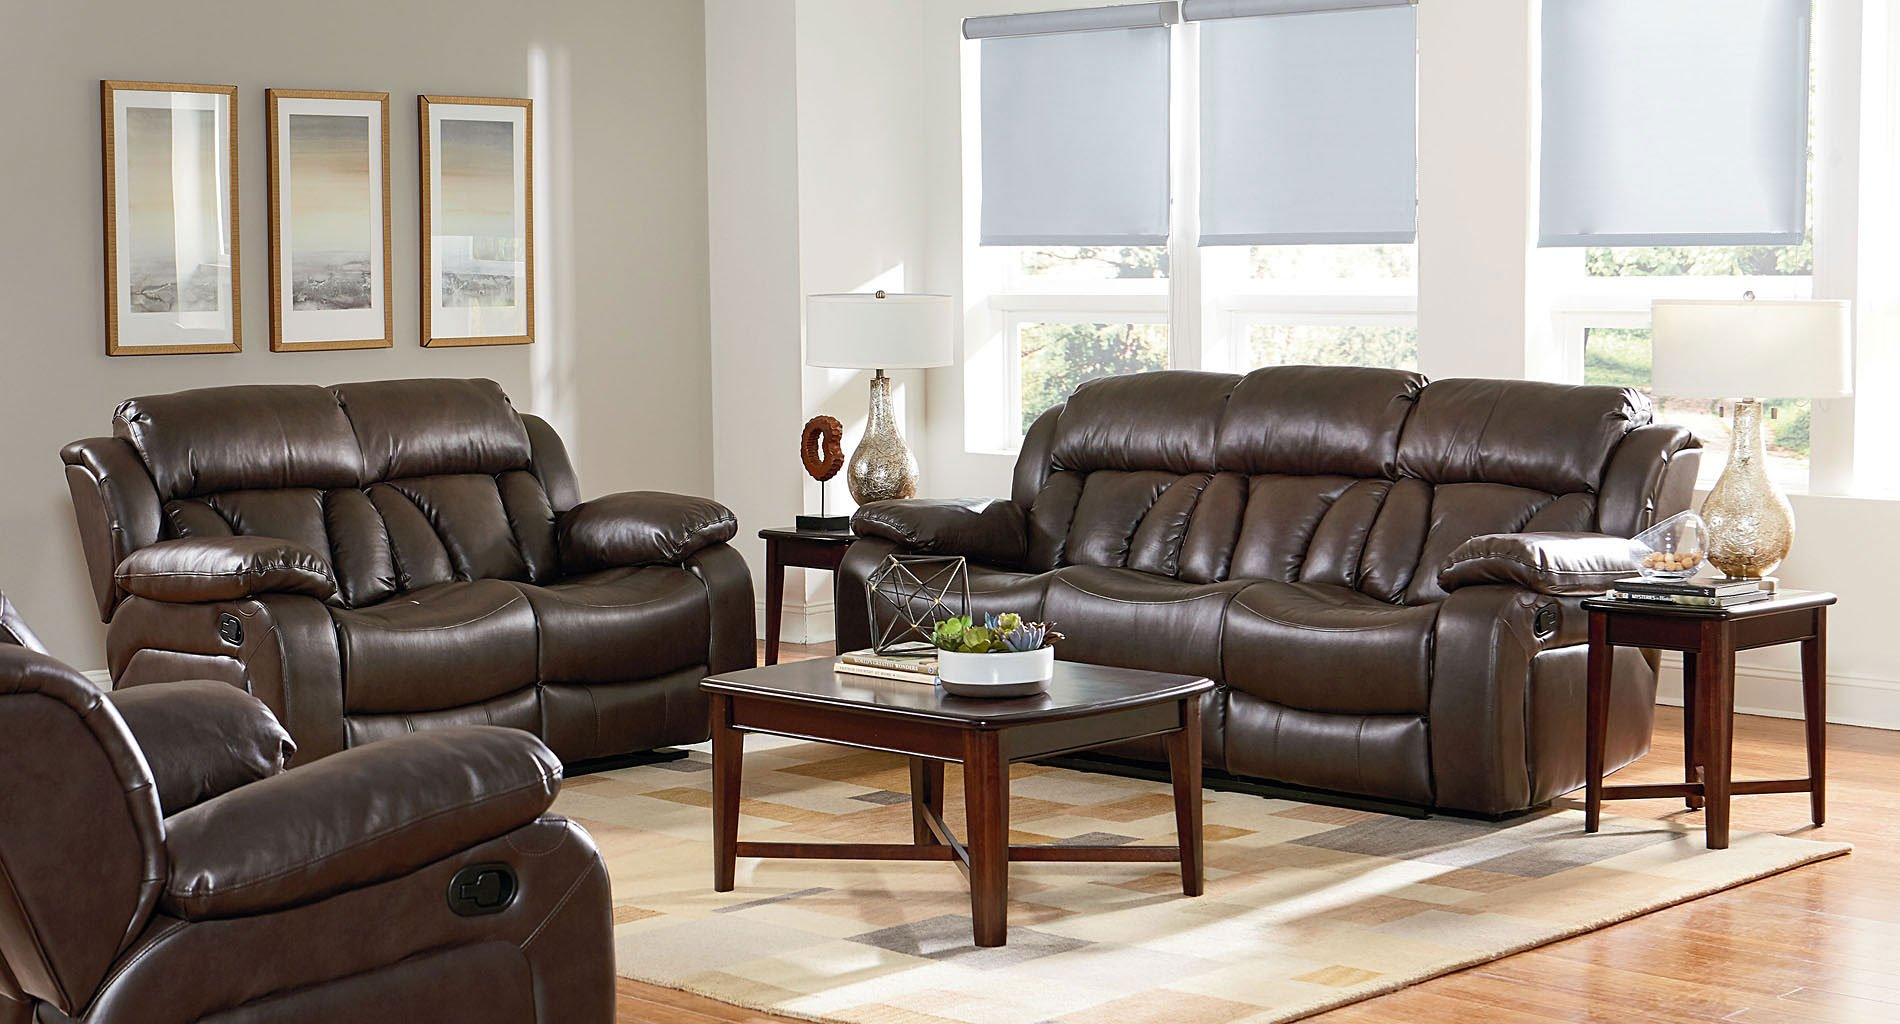 North shore reclining living room set living room sets living room furniture living room - North shore living room set ...